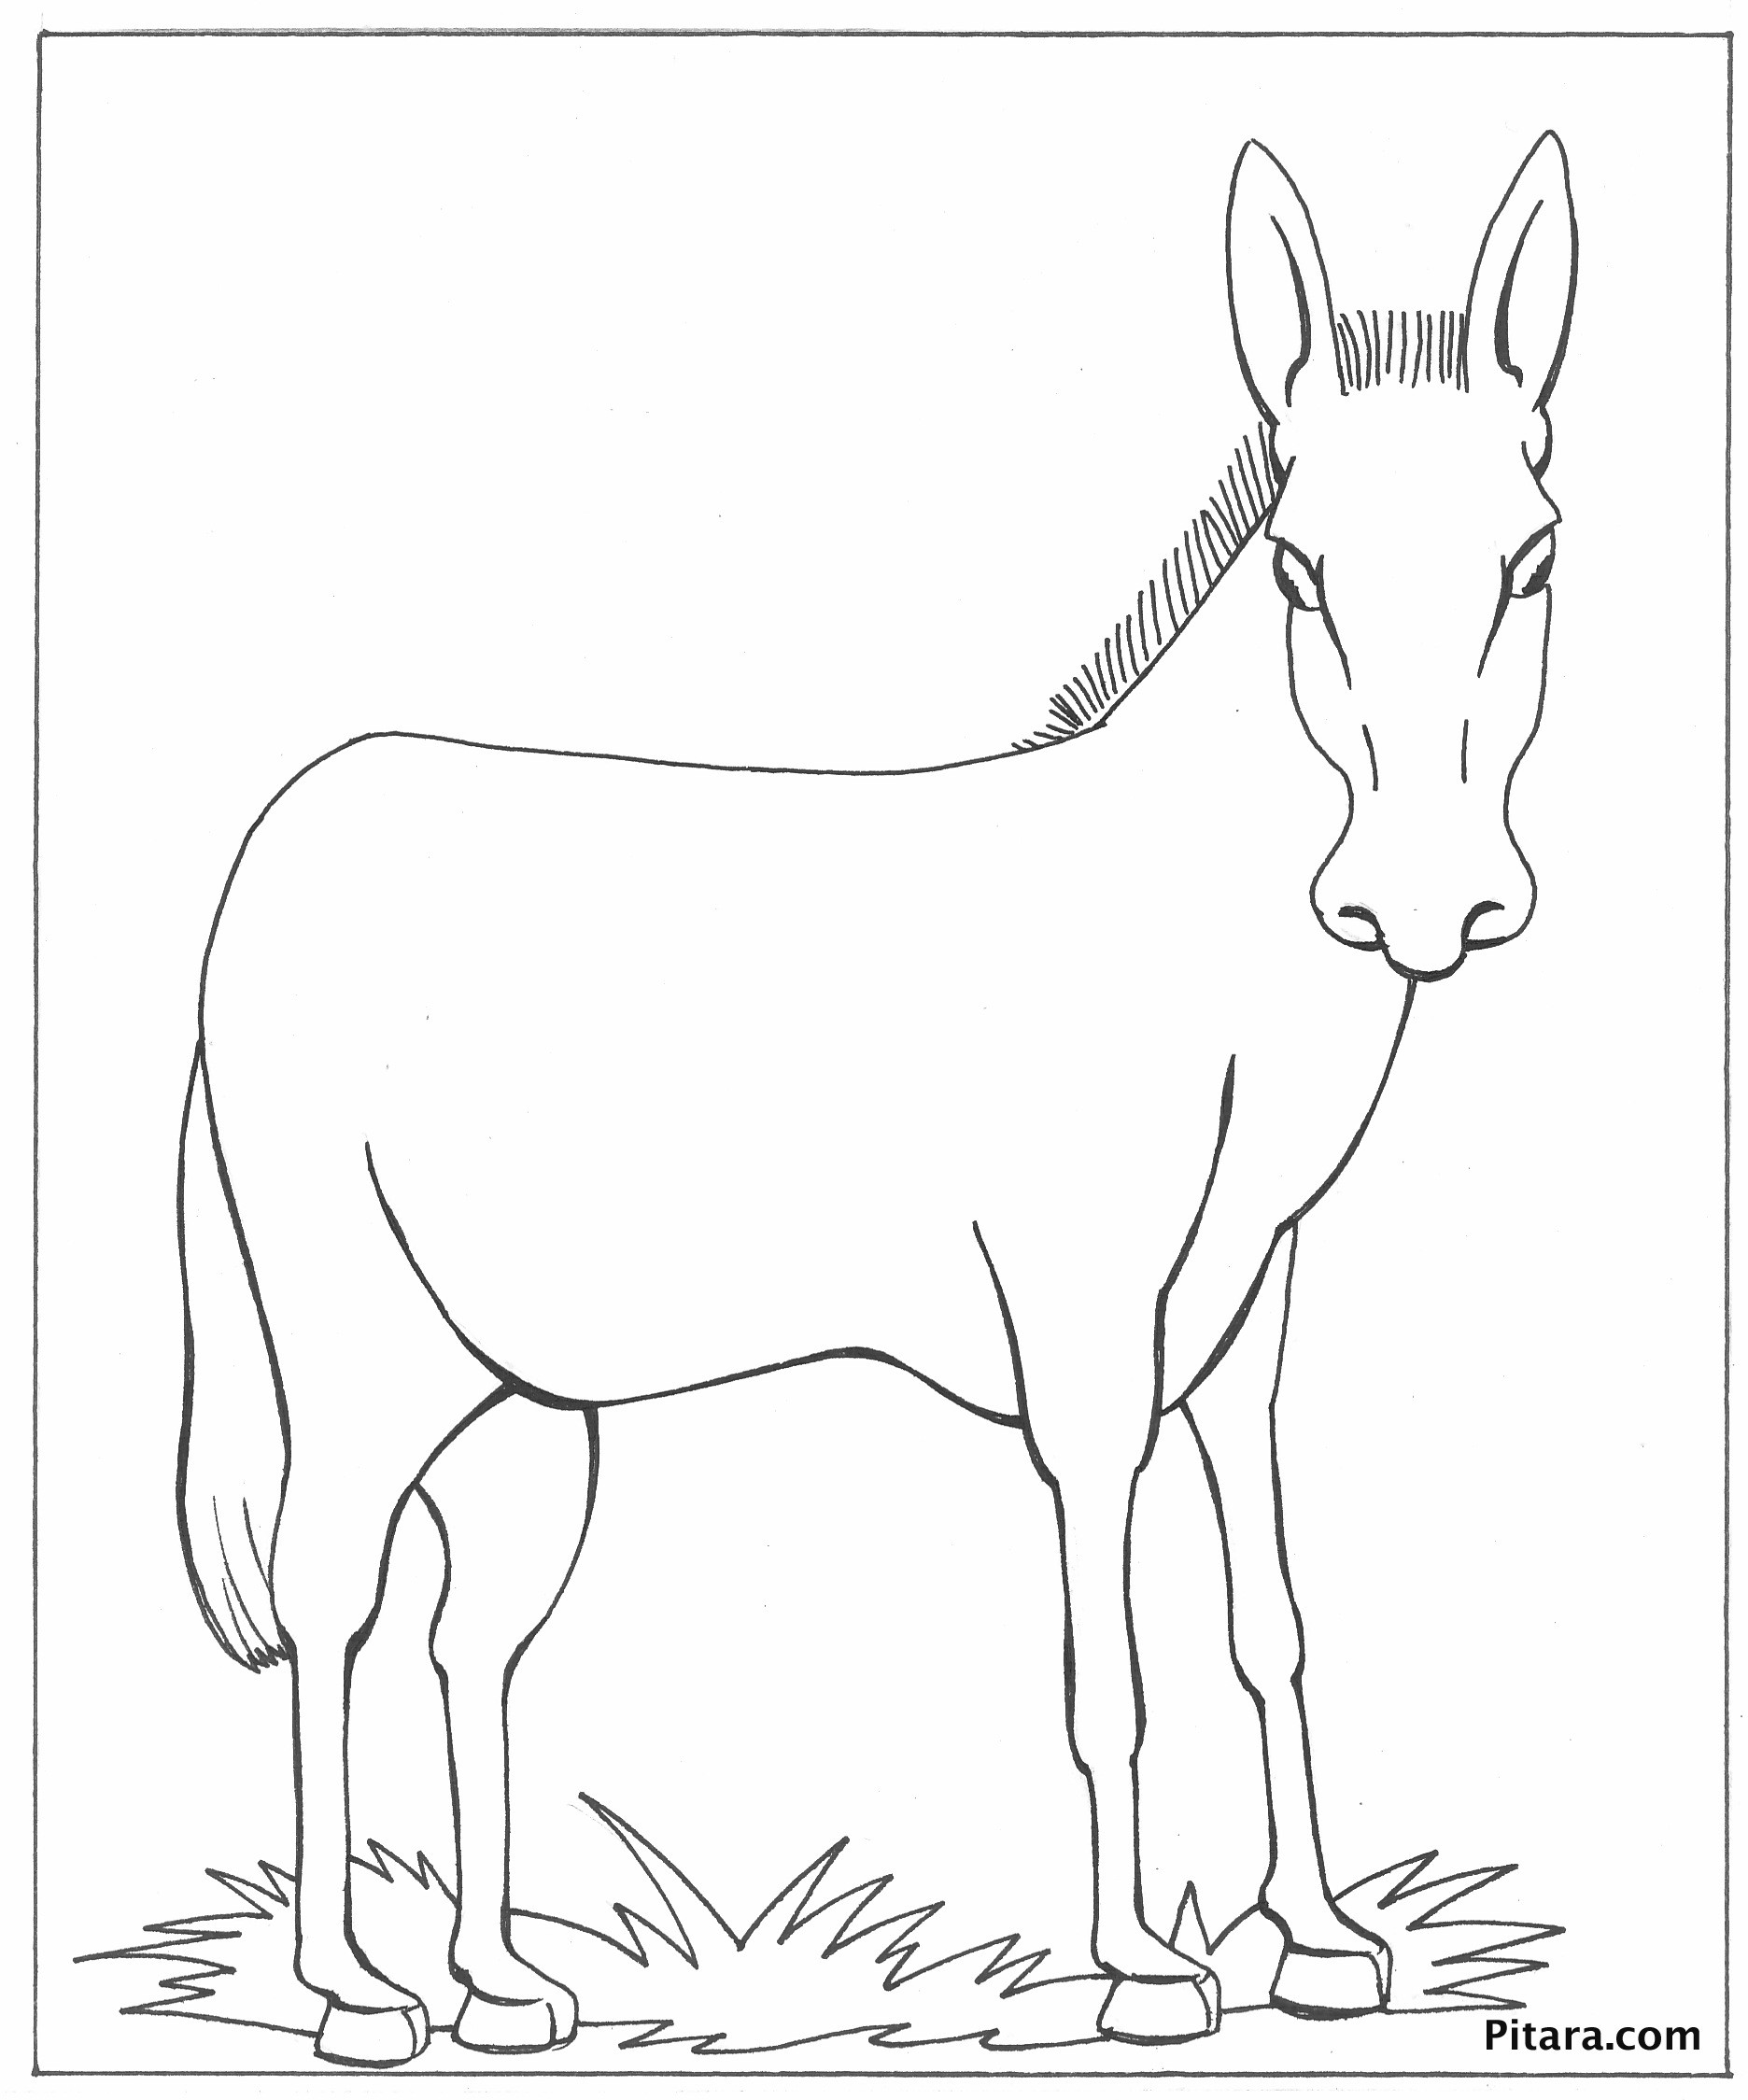 Pin The Tail On The Donkey Drawing at GetDrawings.com | Free for ...